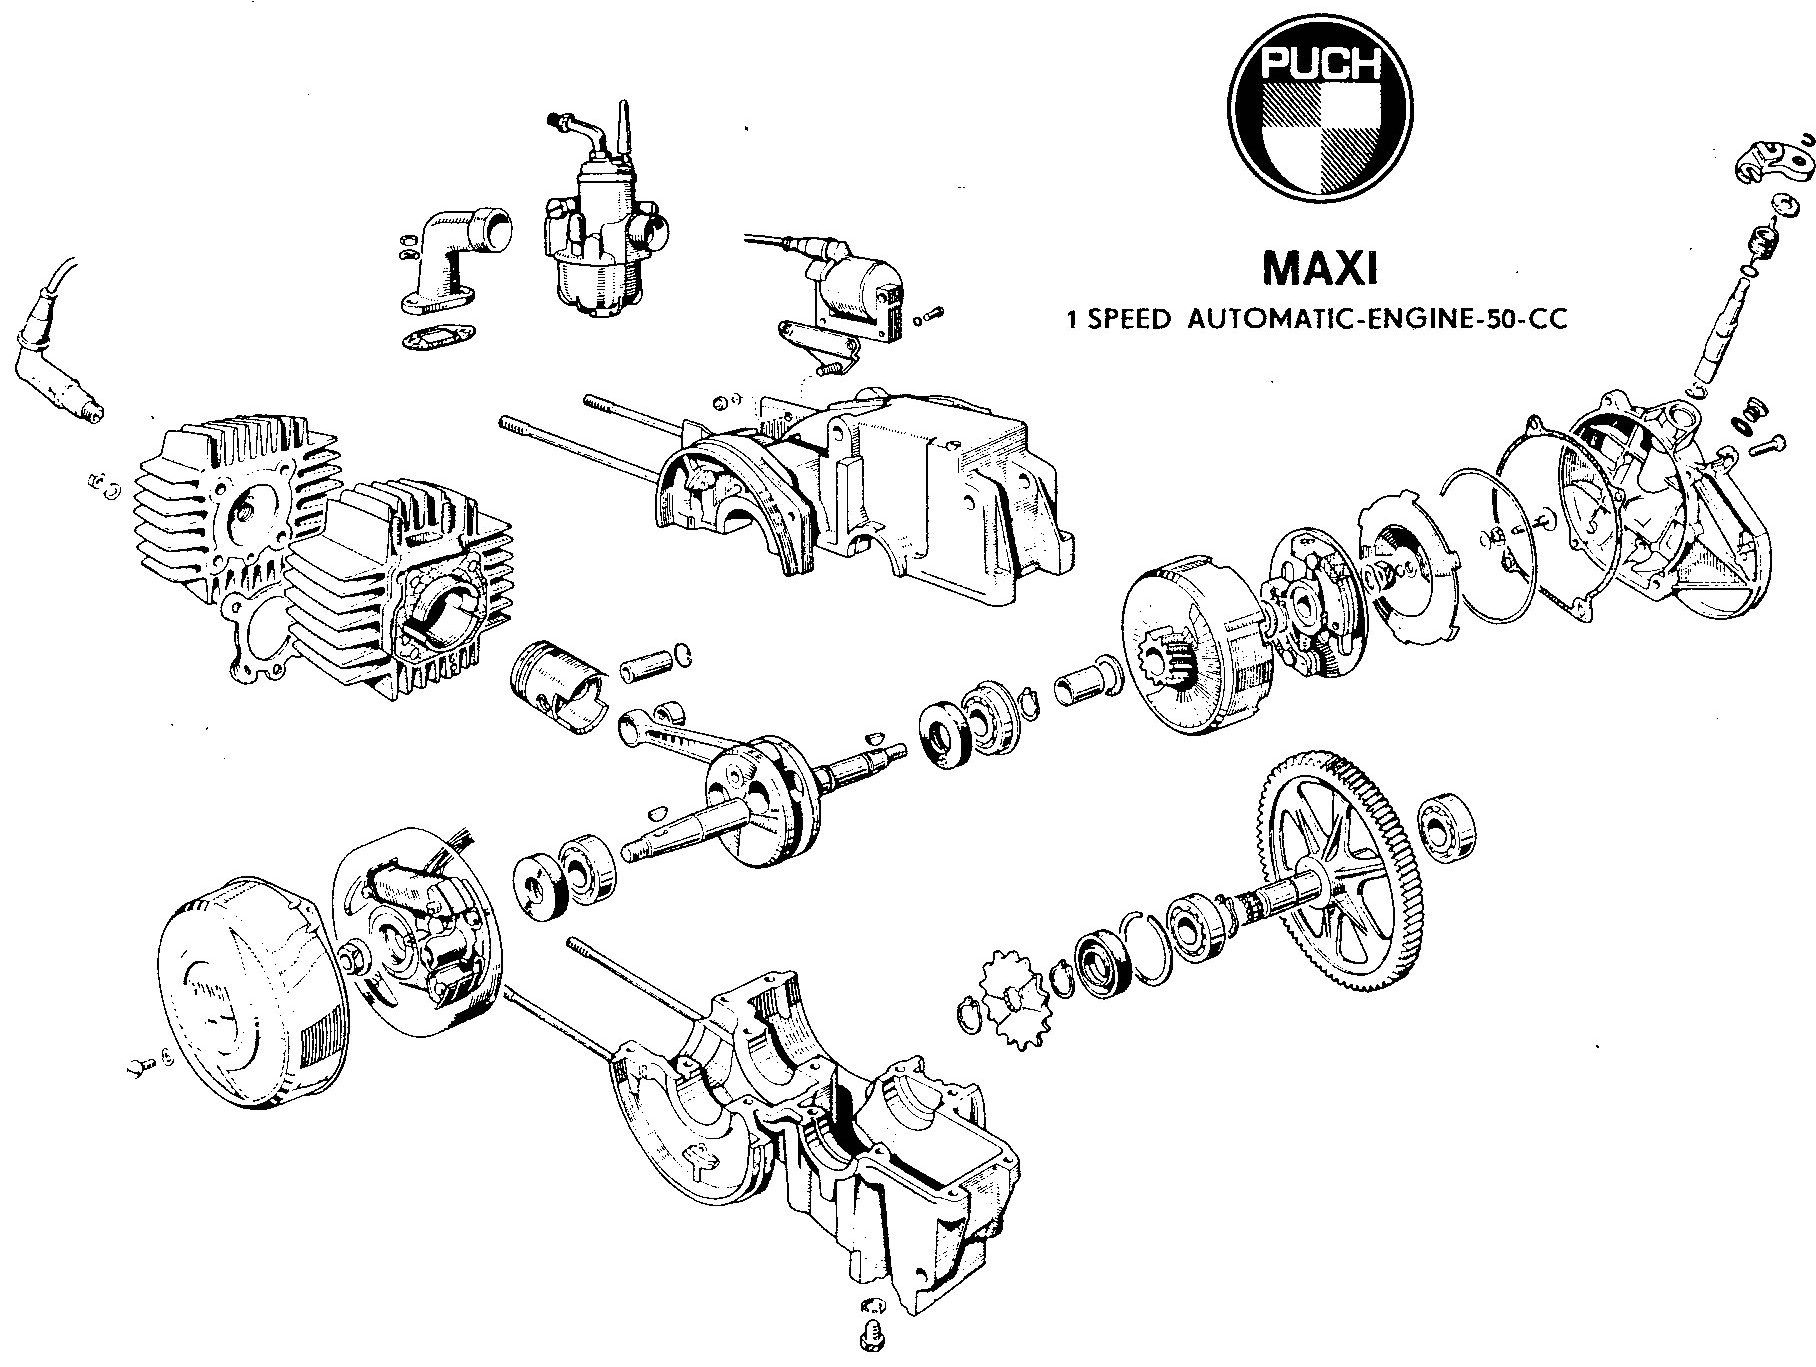 puch maxi wiring diagram newport free engine image for 1996 dodge caravan fuse box luxe library